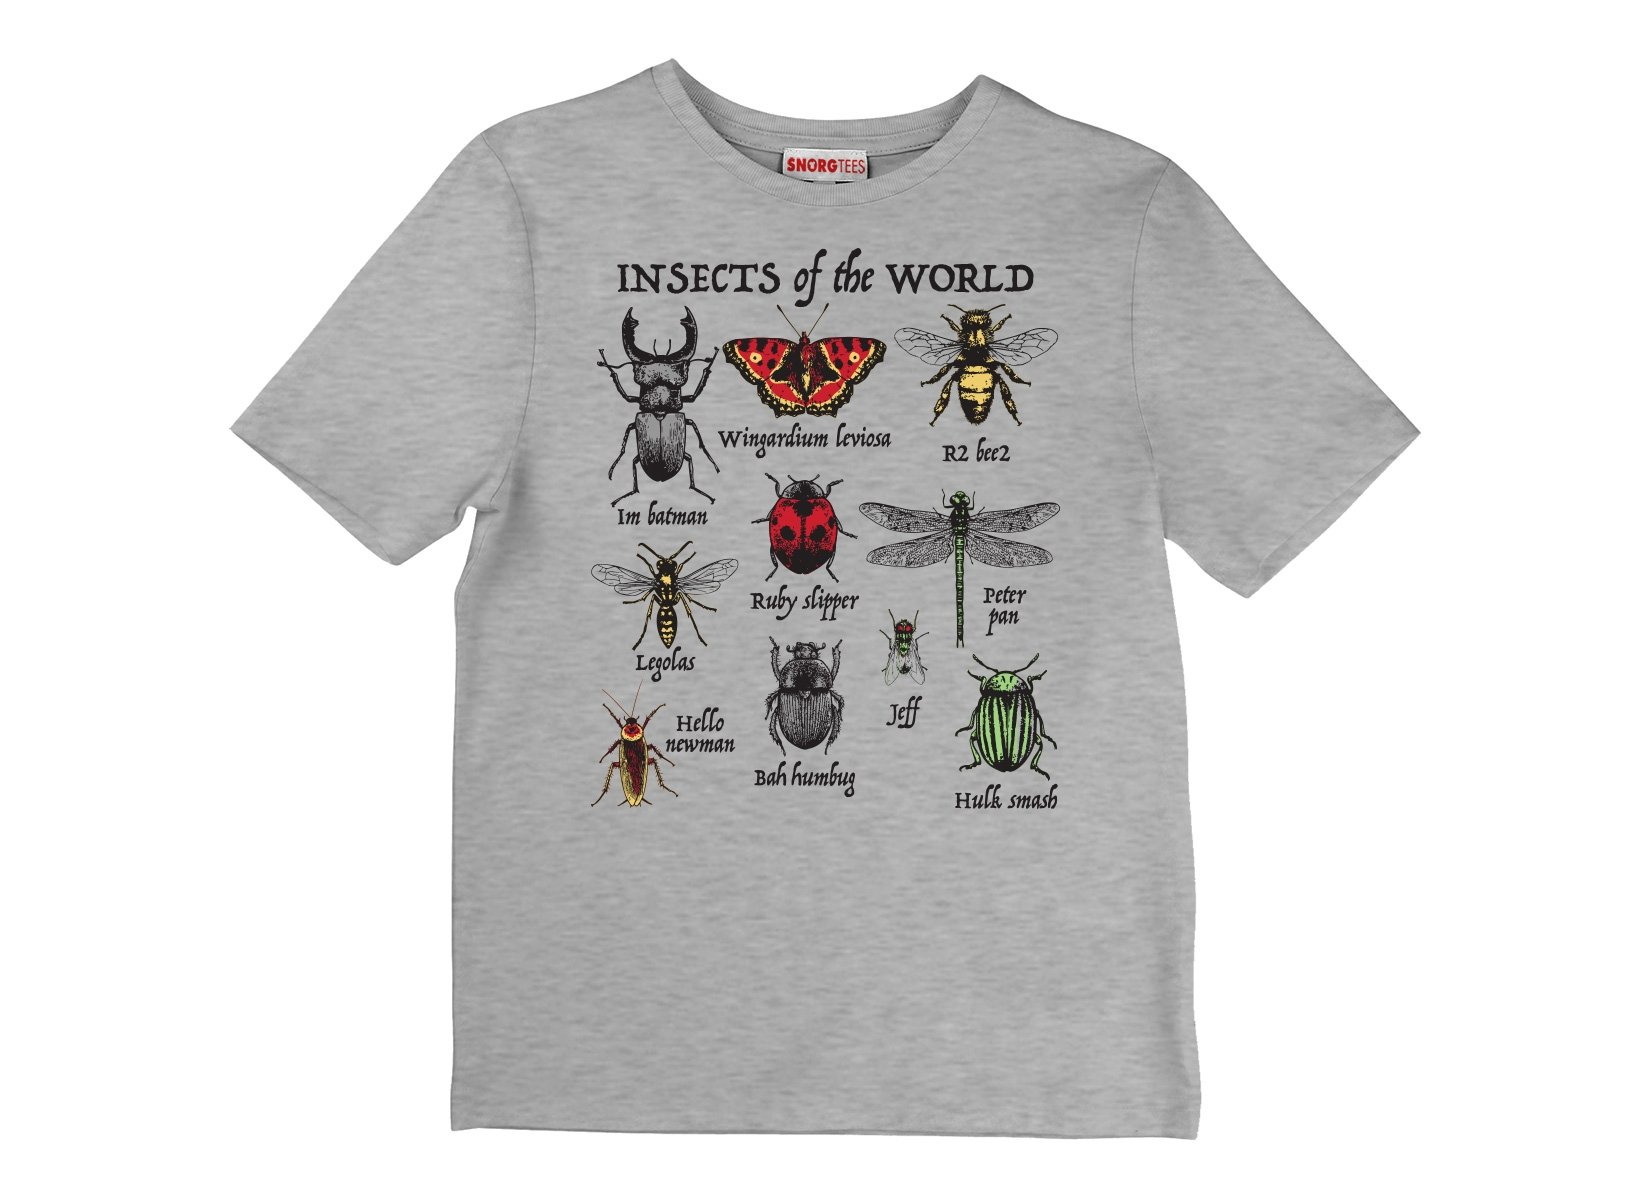 Insects Of The World on Kids T-Shirt